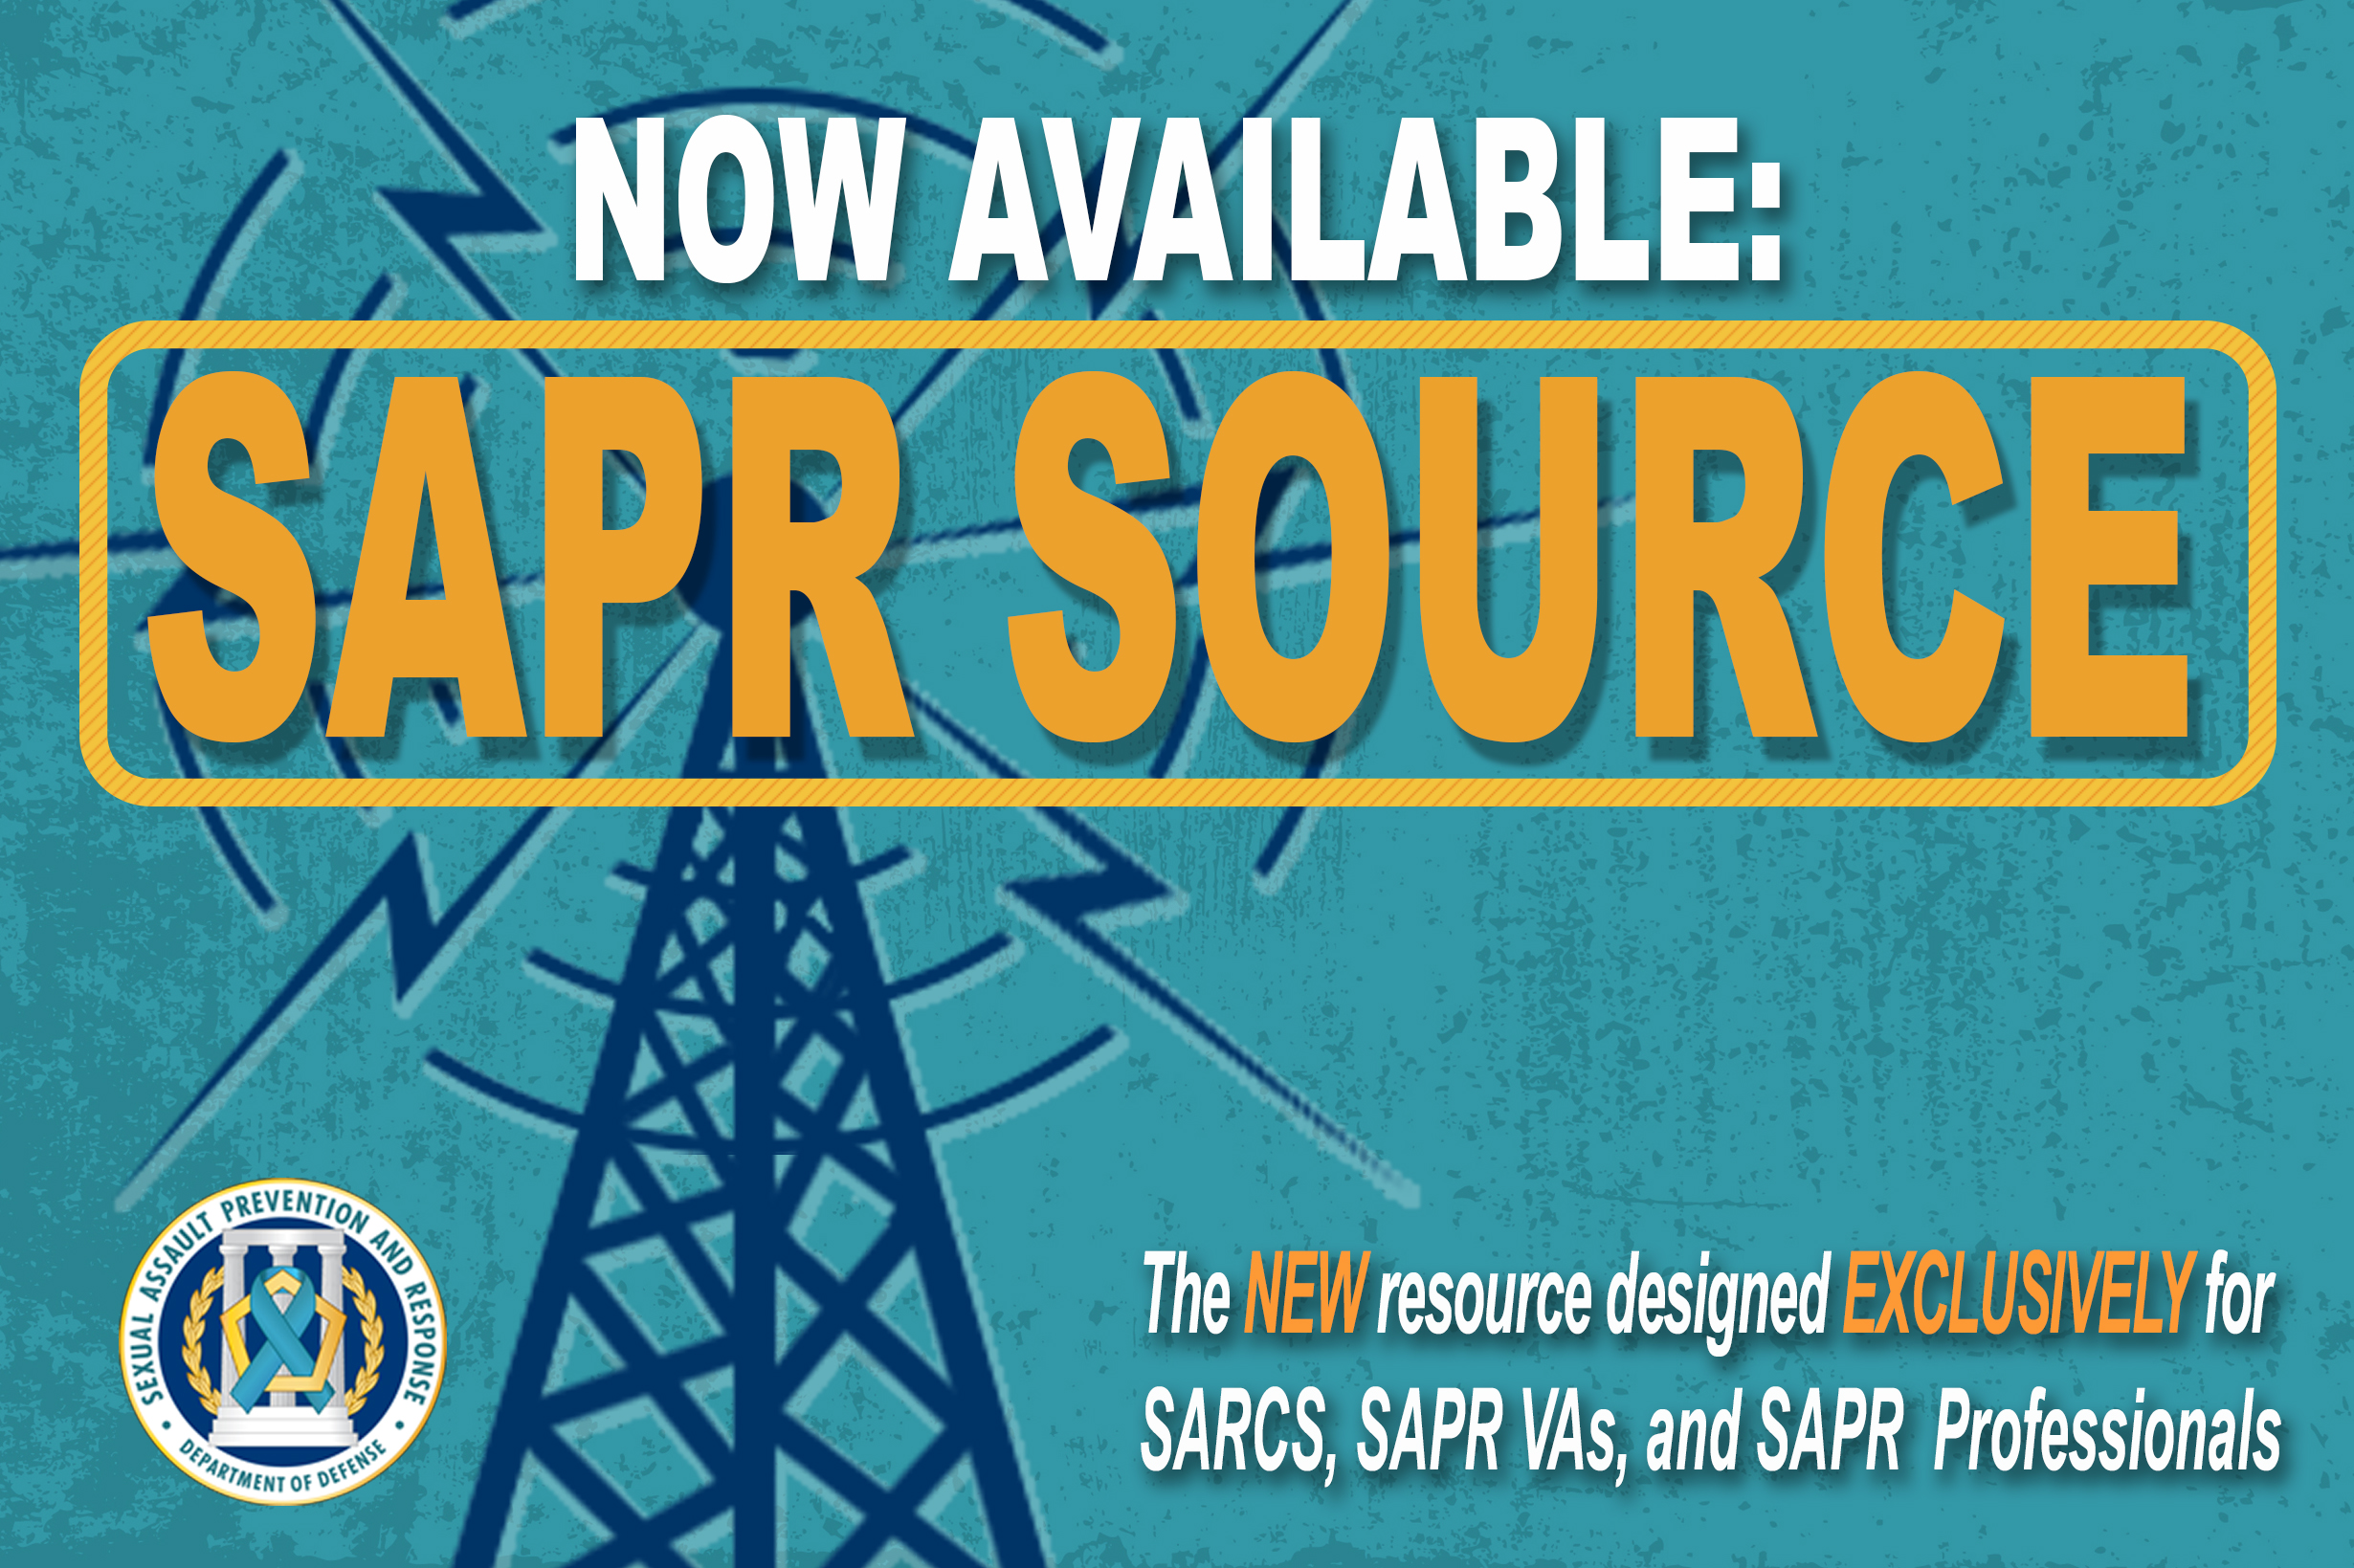 SAPR Source